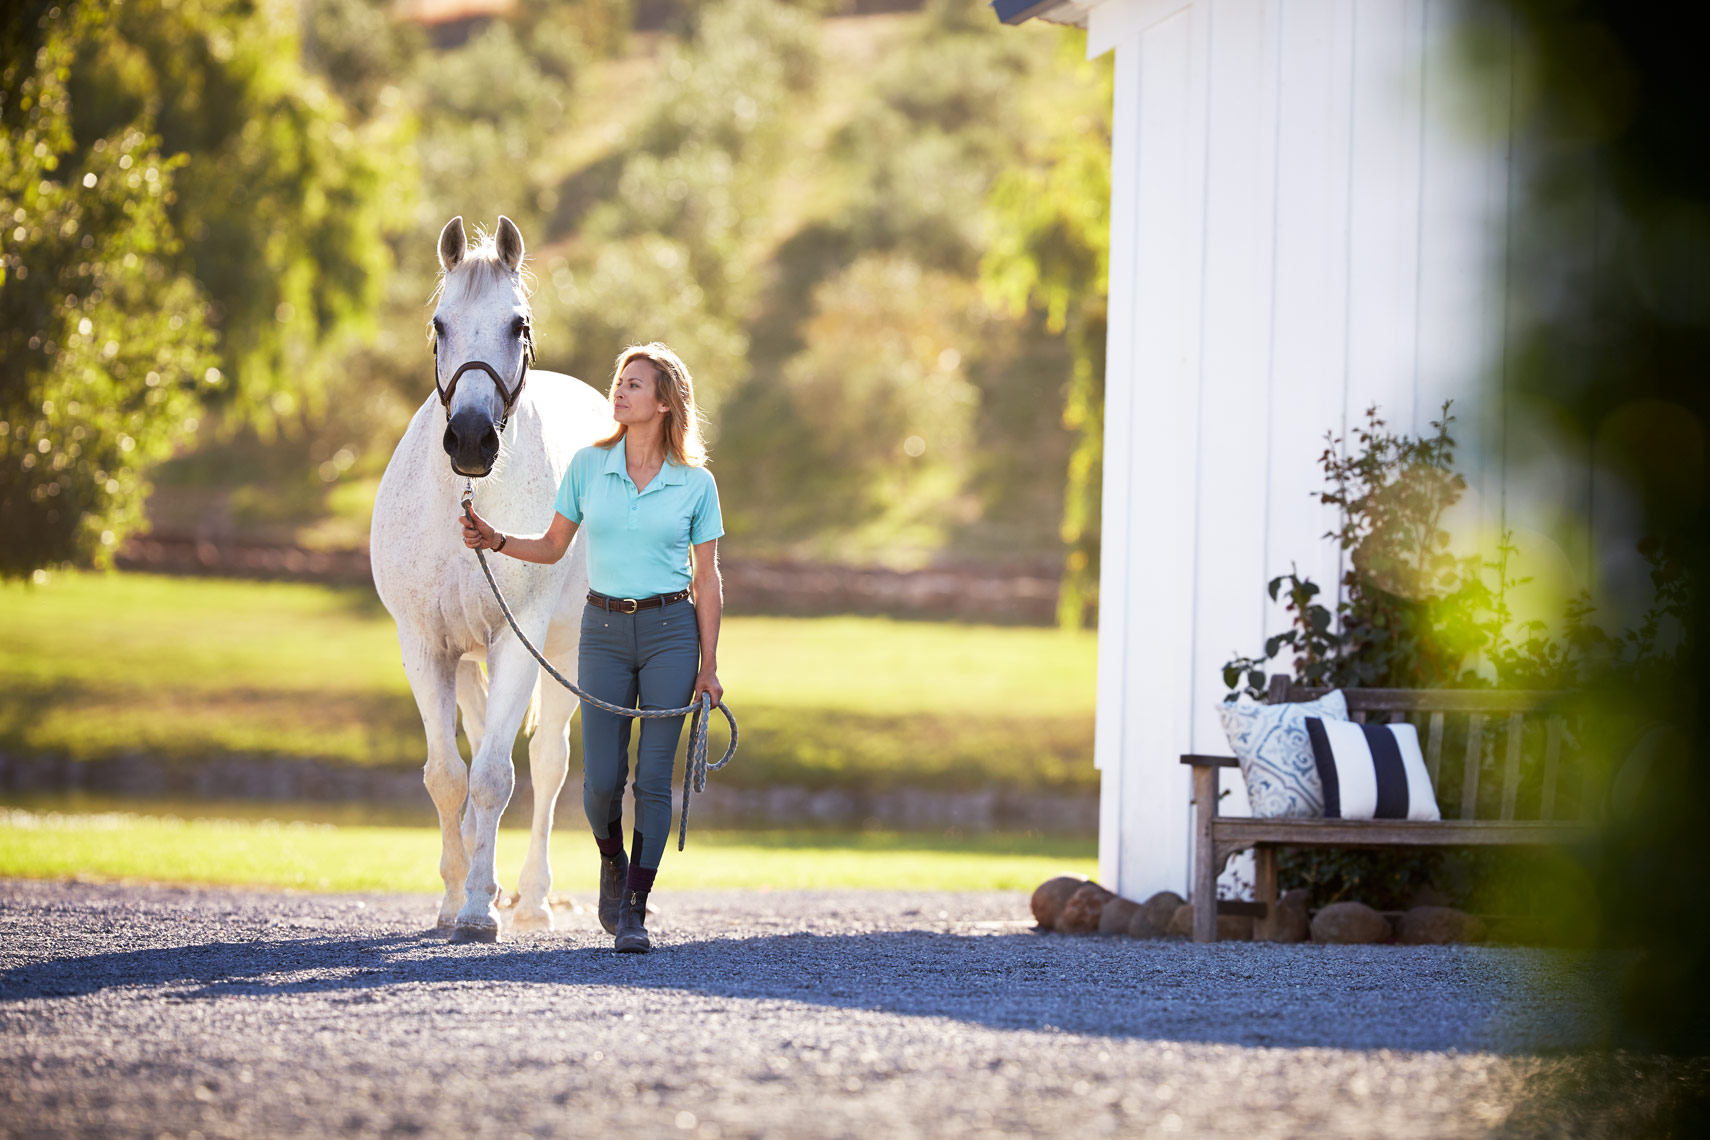 lifestyle photographer, advertising photographer, woman with horse, women leaning, smiling, backlit, blonde woman, equestrian, white horse, barn, woman riding horse